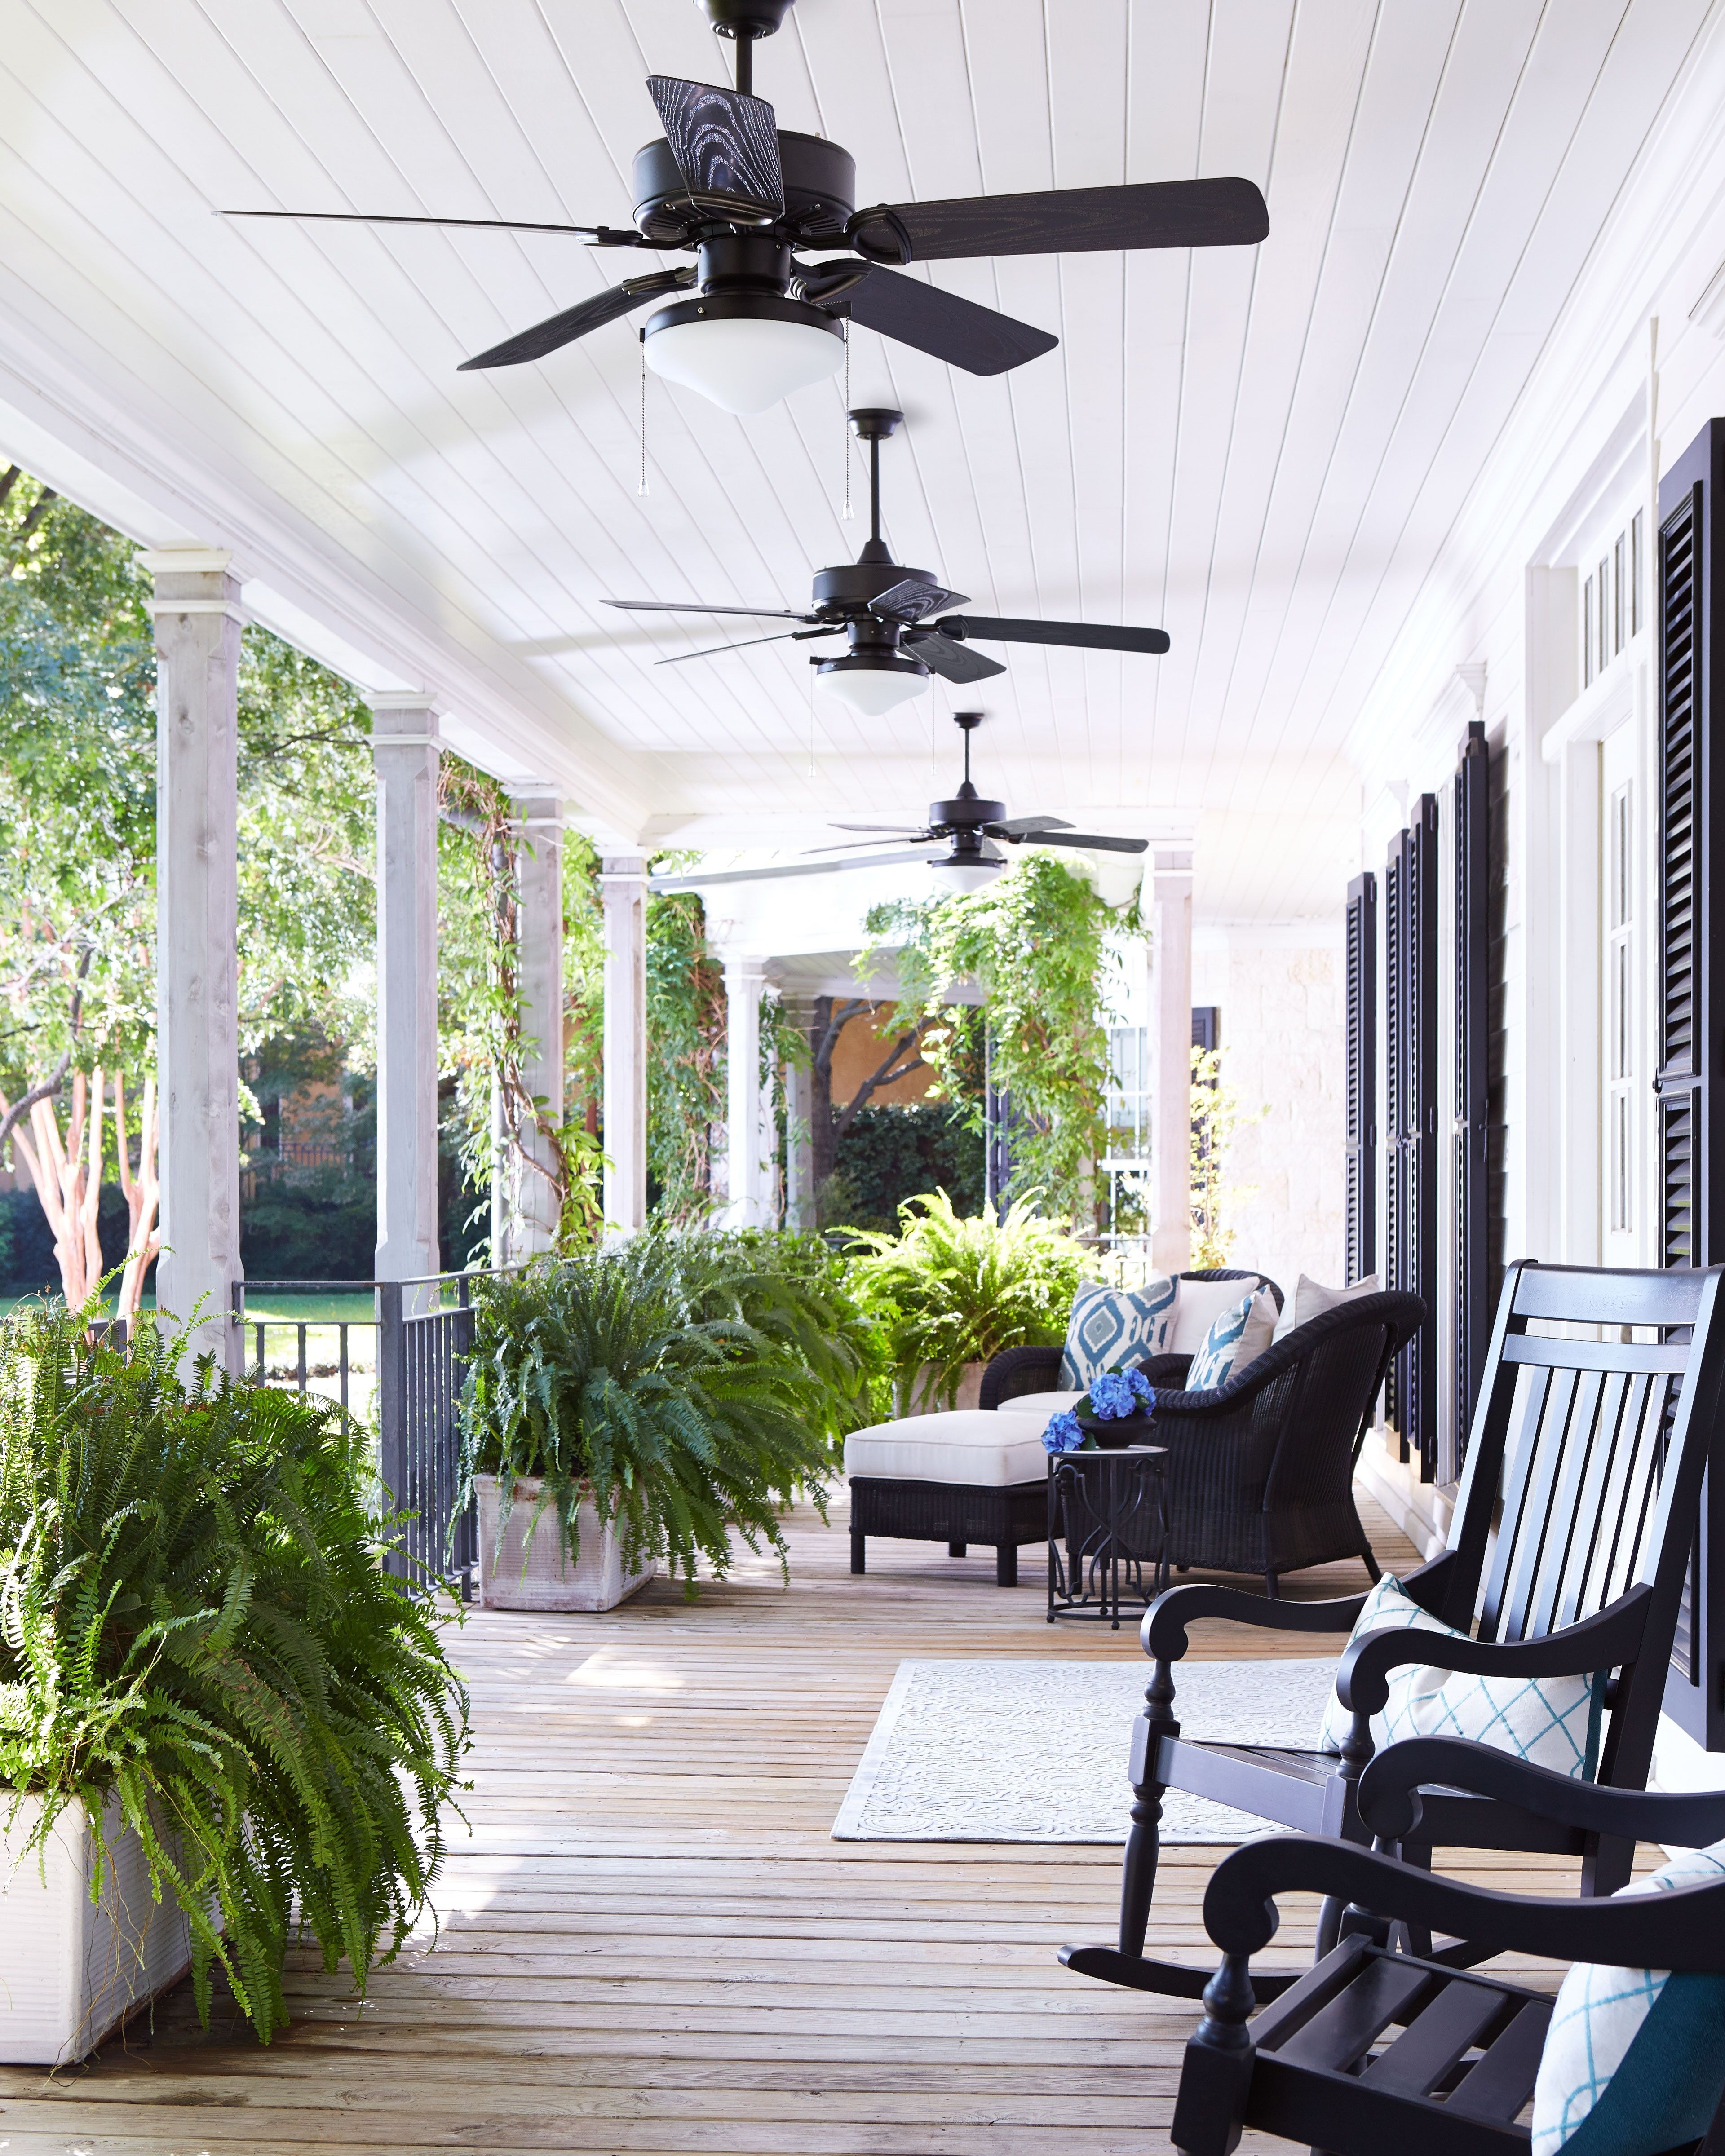 Pin By Matthew Felts On Your Likes House Design And Decorating Patio Fan Outdoor Ceiling Fans Best Outdoor Ceiling Fans